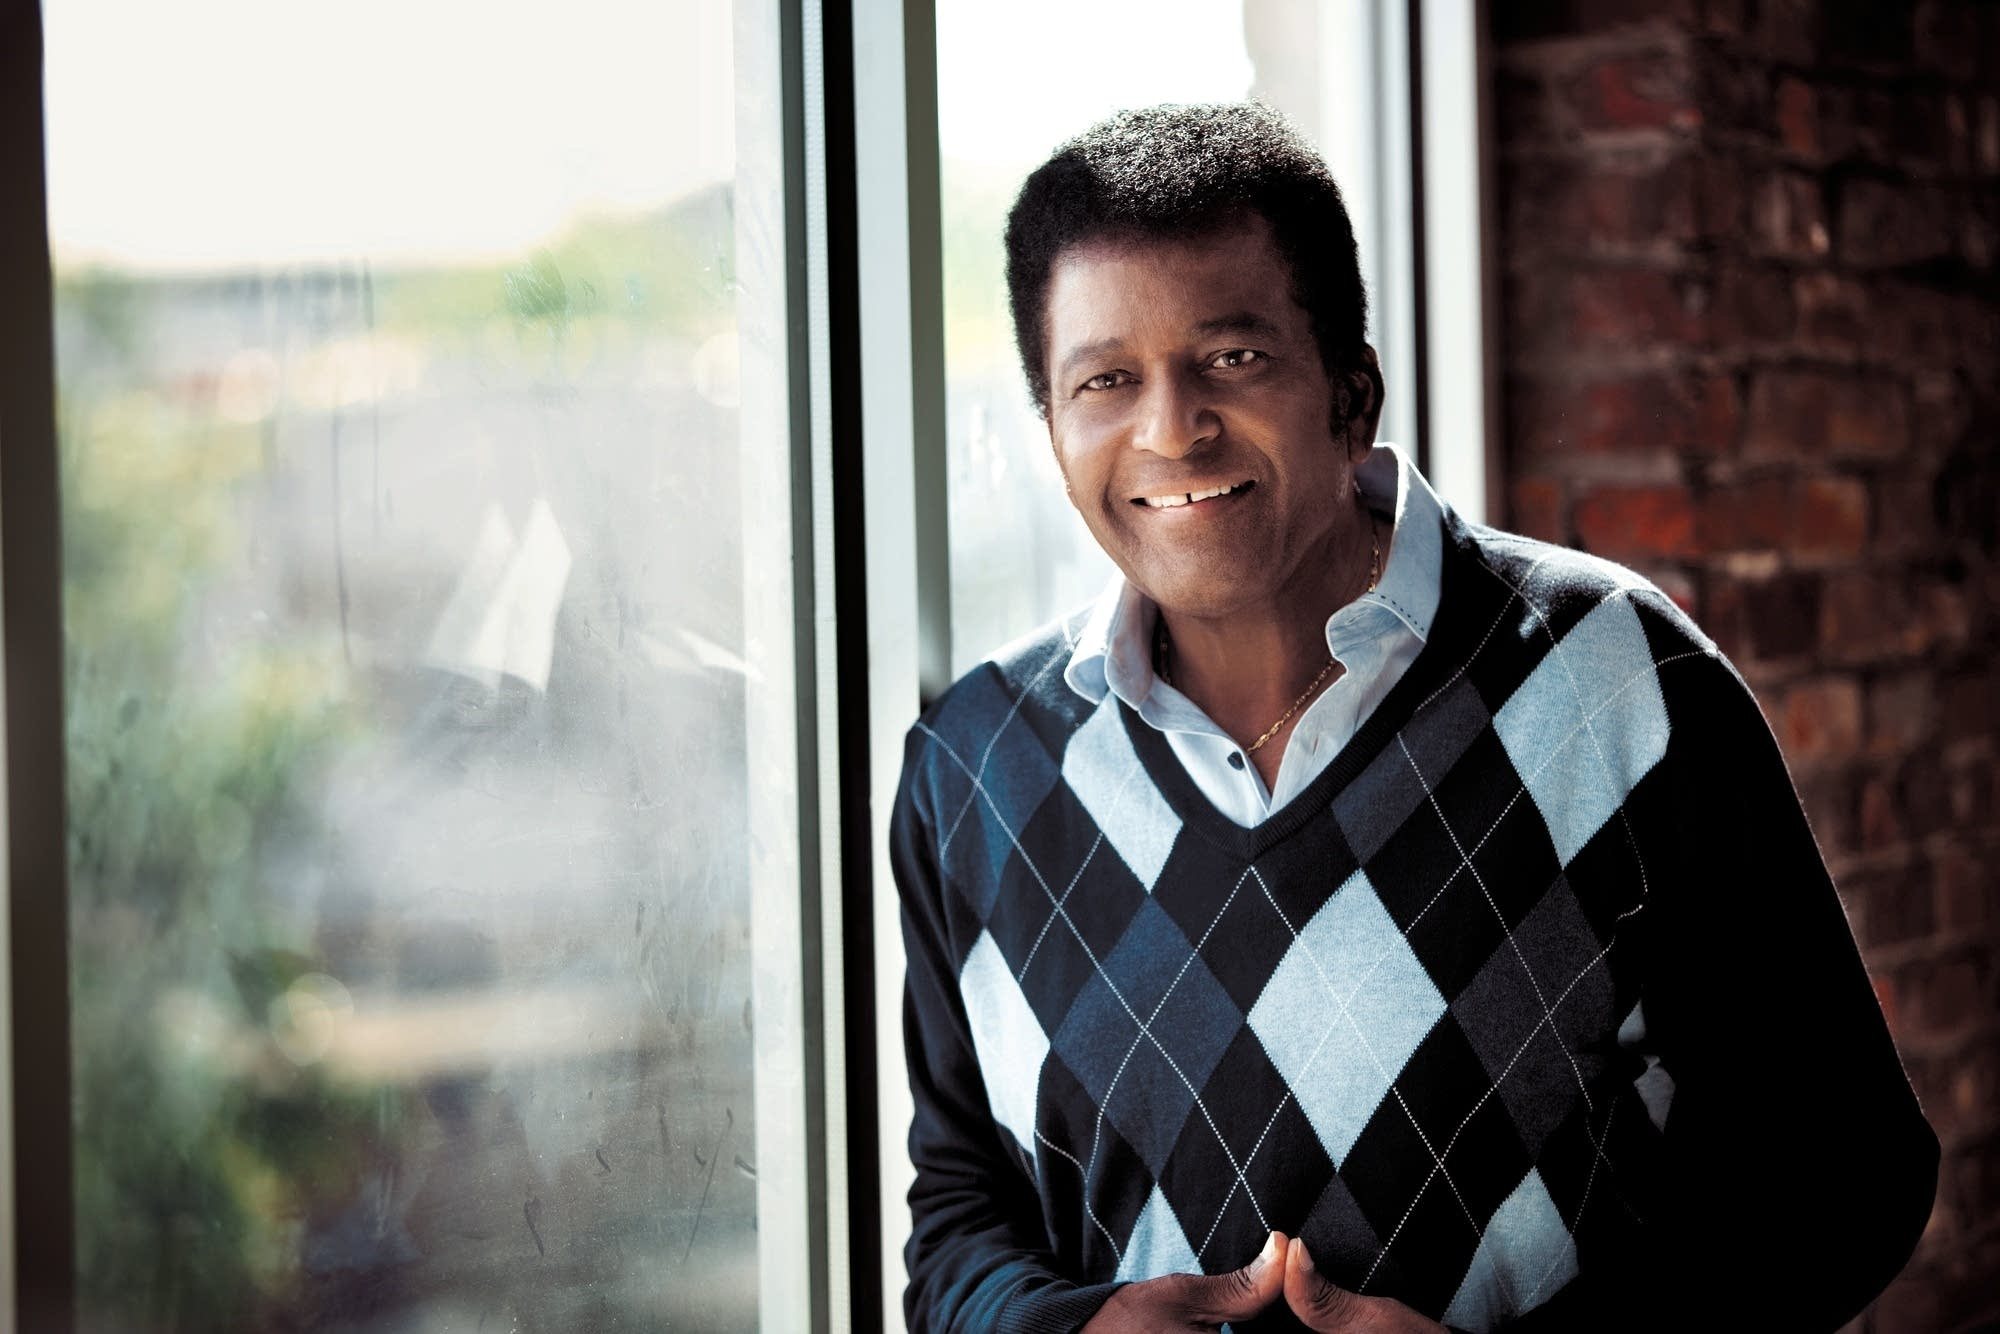 Charley Pride photo